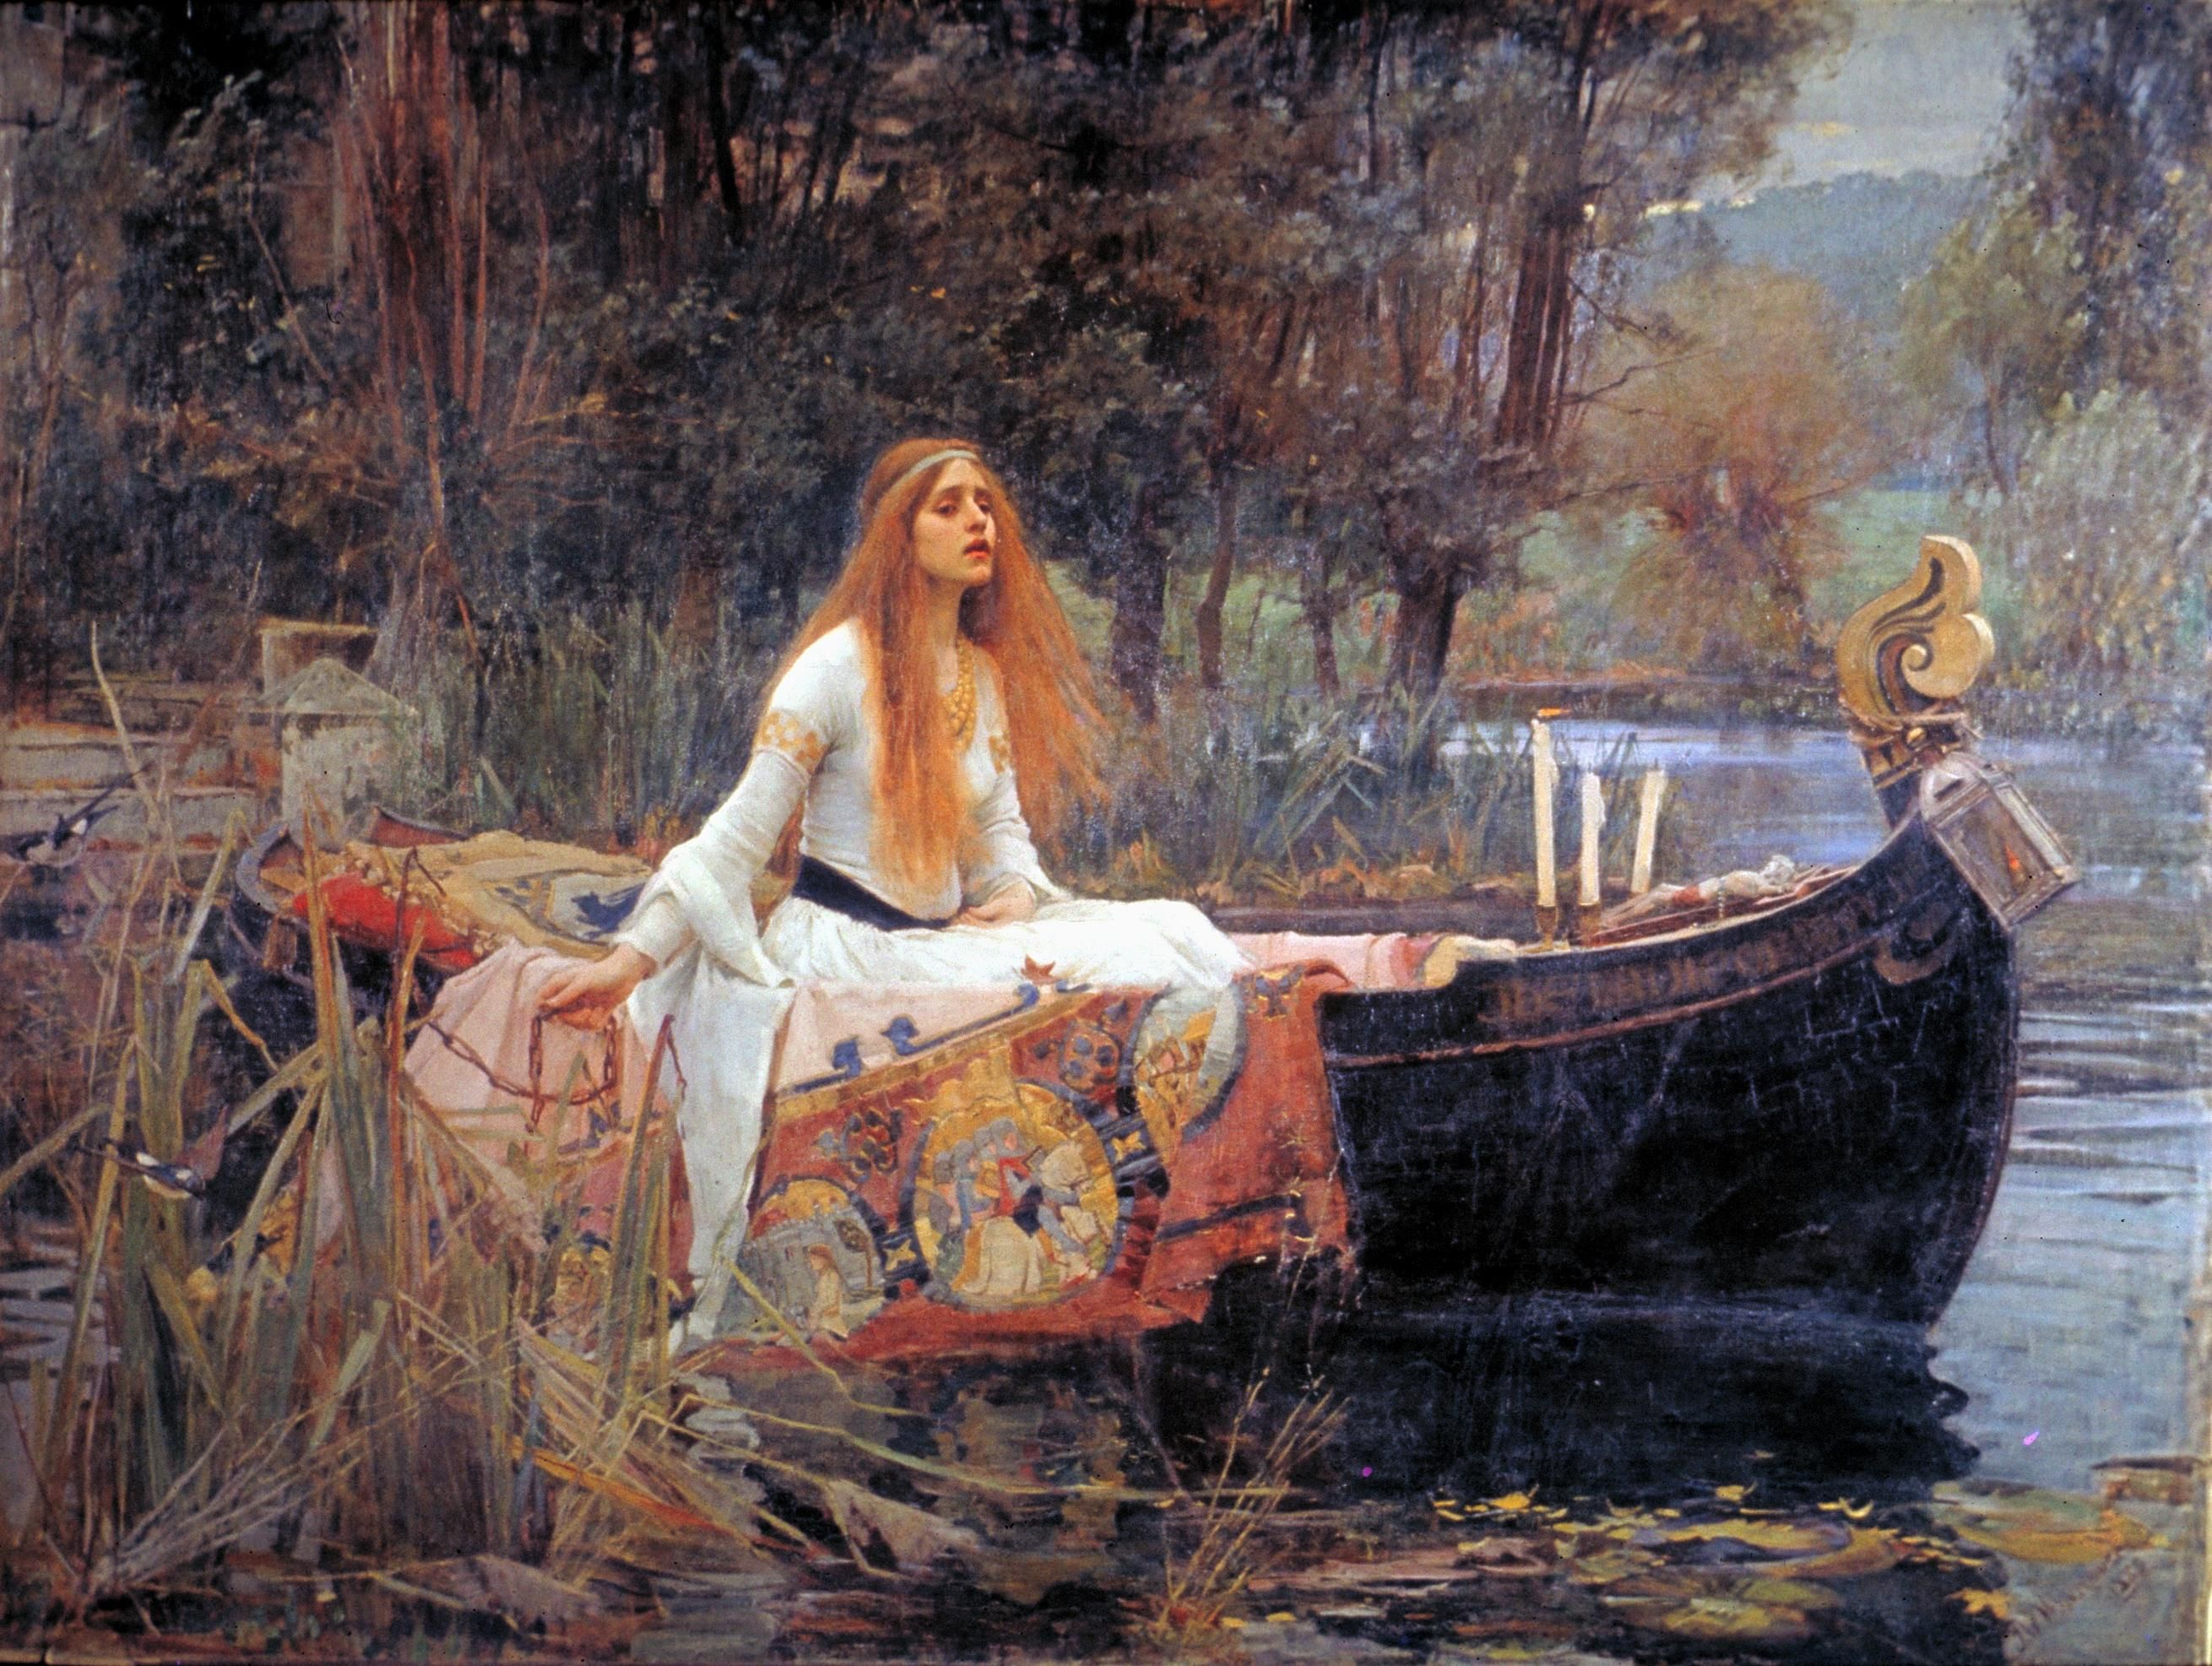 the lady of the shallot john william waterhouse one of my the lady of the shallot john william waterhouse one of my favorites